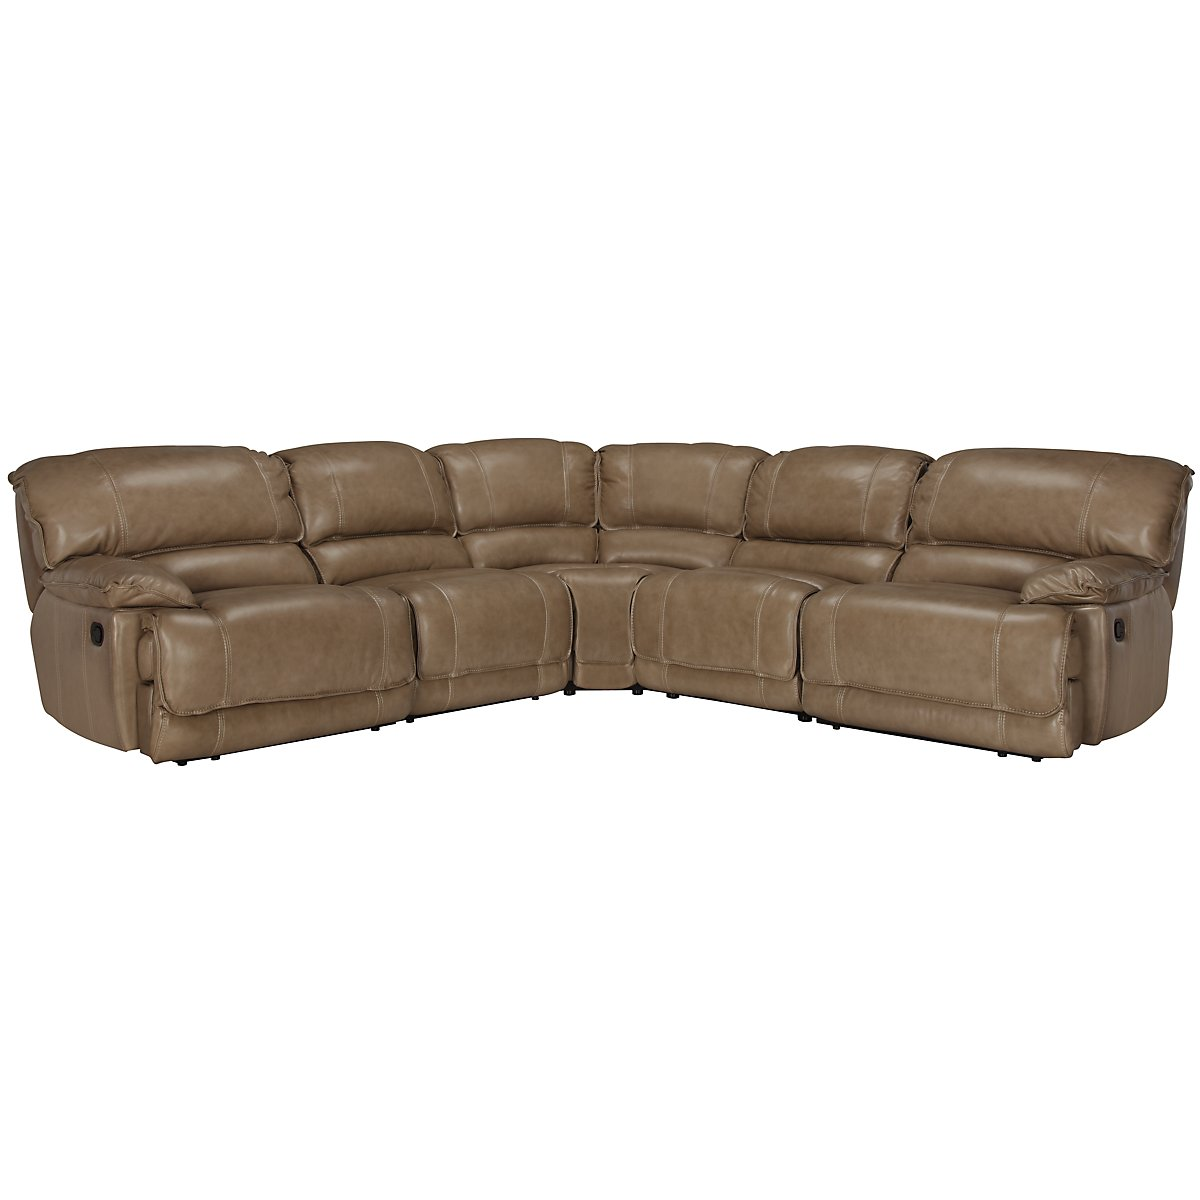 Benson Dk Taupe Leather & Vinyl Small Two-Arm Manually Reclining Sectional